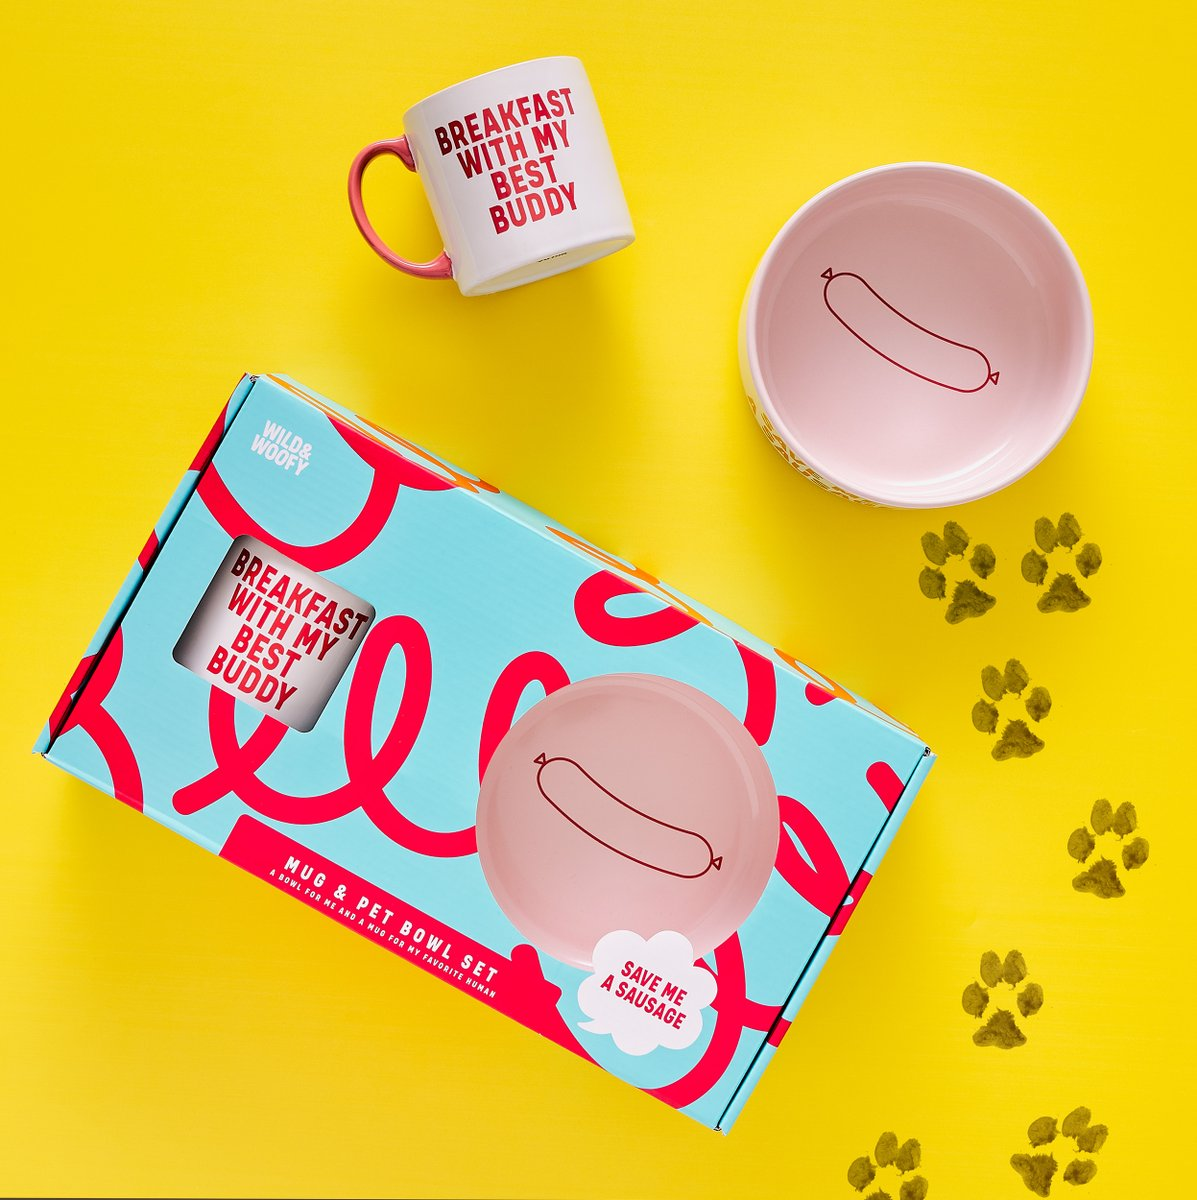 Hanging out with your pooch today? Make sure they never feel left out with our Dog Mug and Bowl Set from @wildandwoofy : https://bit.ly/2QHV1VW  : https://jland.partners/3dBox9Mpic.twitter.com/Yze6DG3nPM